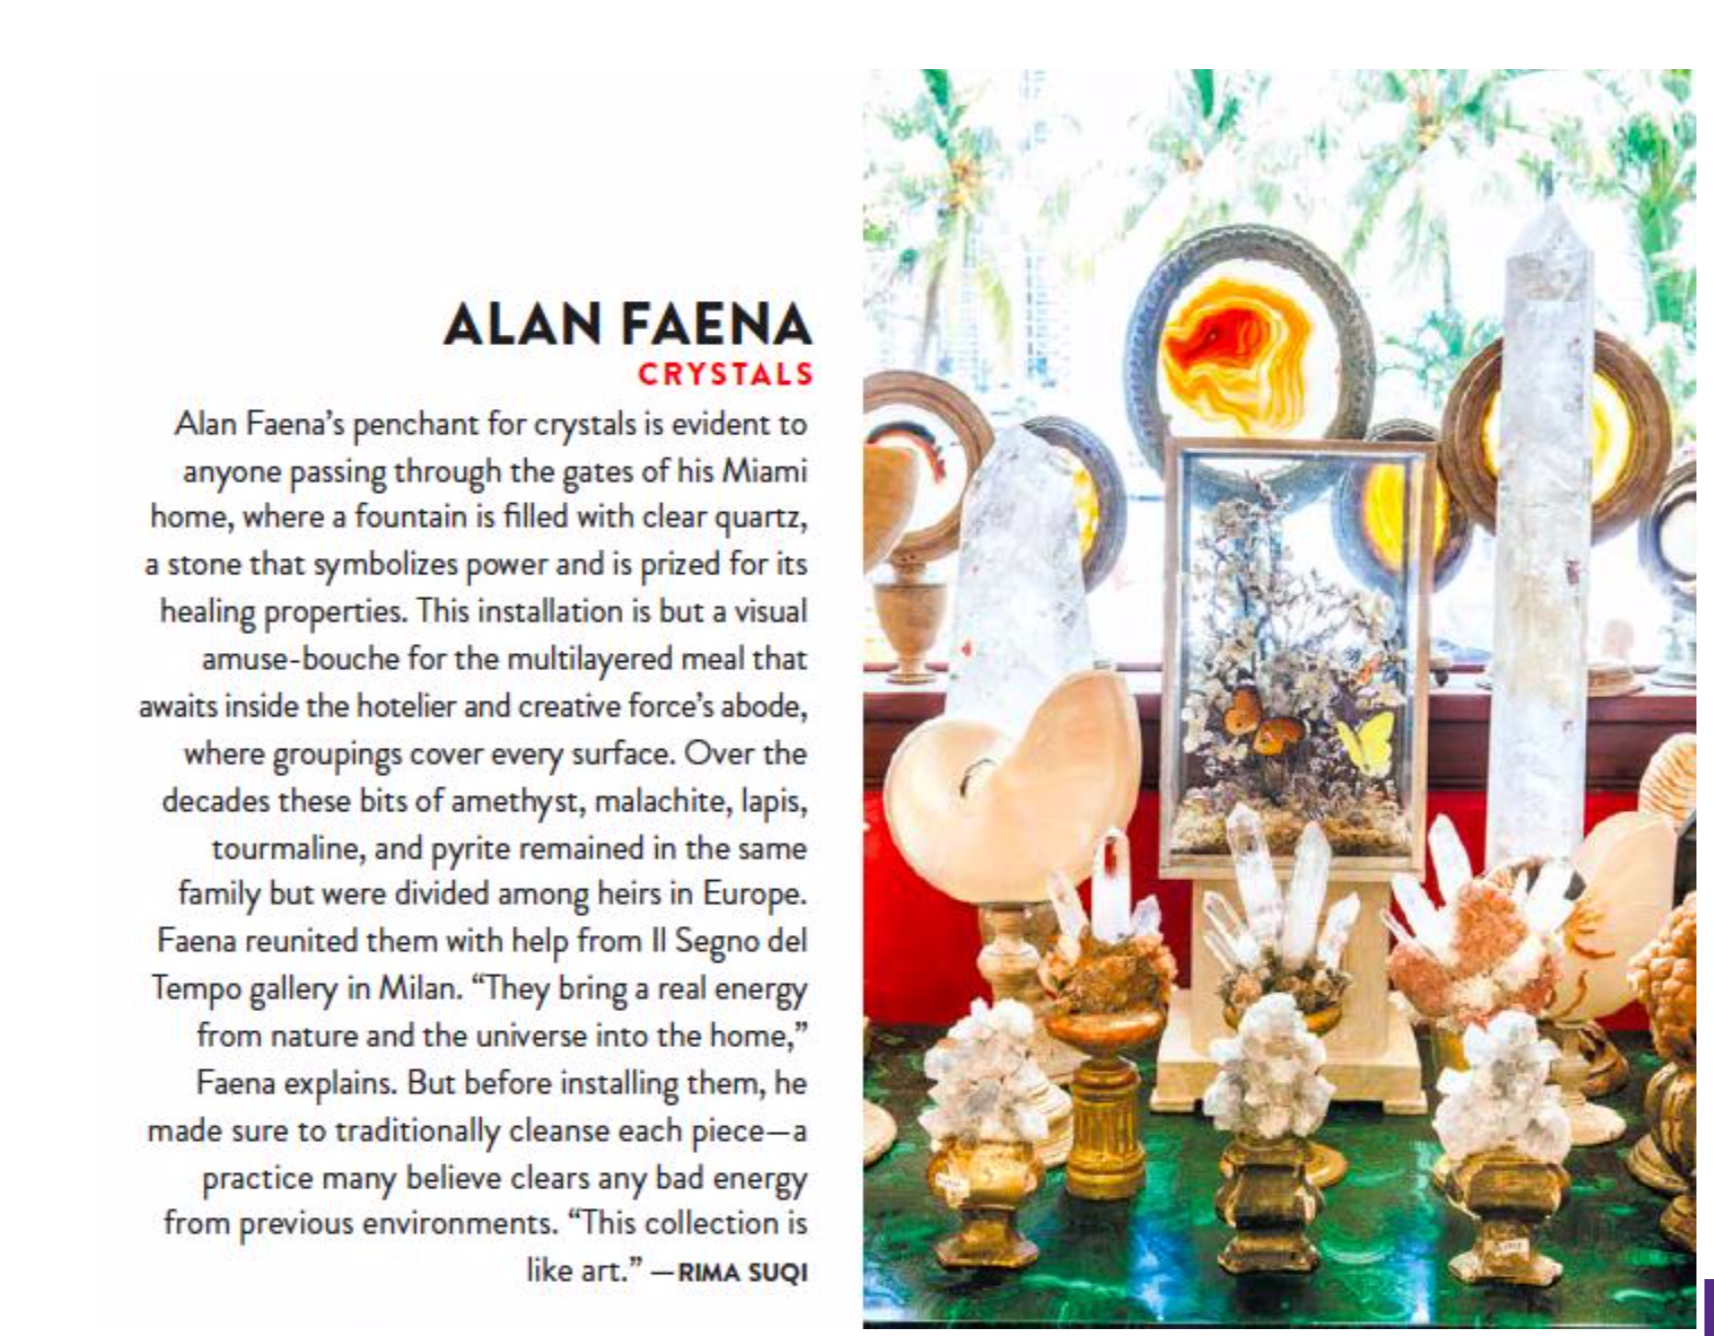 Alan Faena crystal collection, Galerie Magazine, Rima Suqi